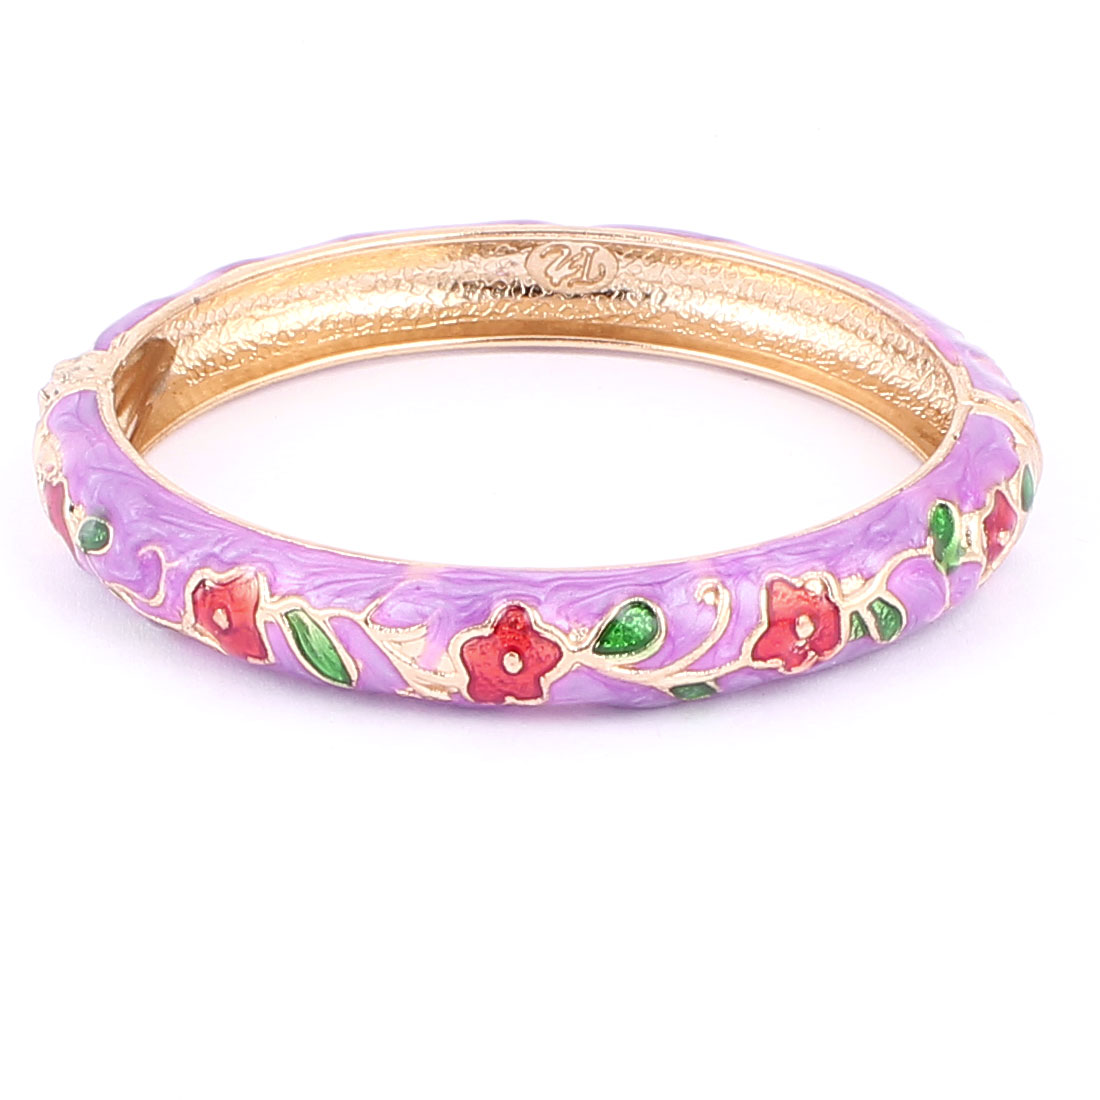 Lady Spring Hinged Round Cuff Flower Pattern Enamel Bracelet Bangle Light Purple